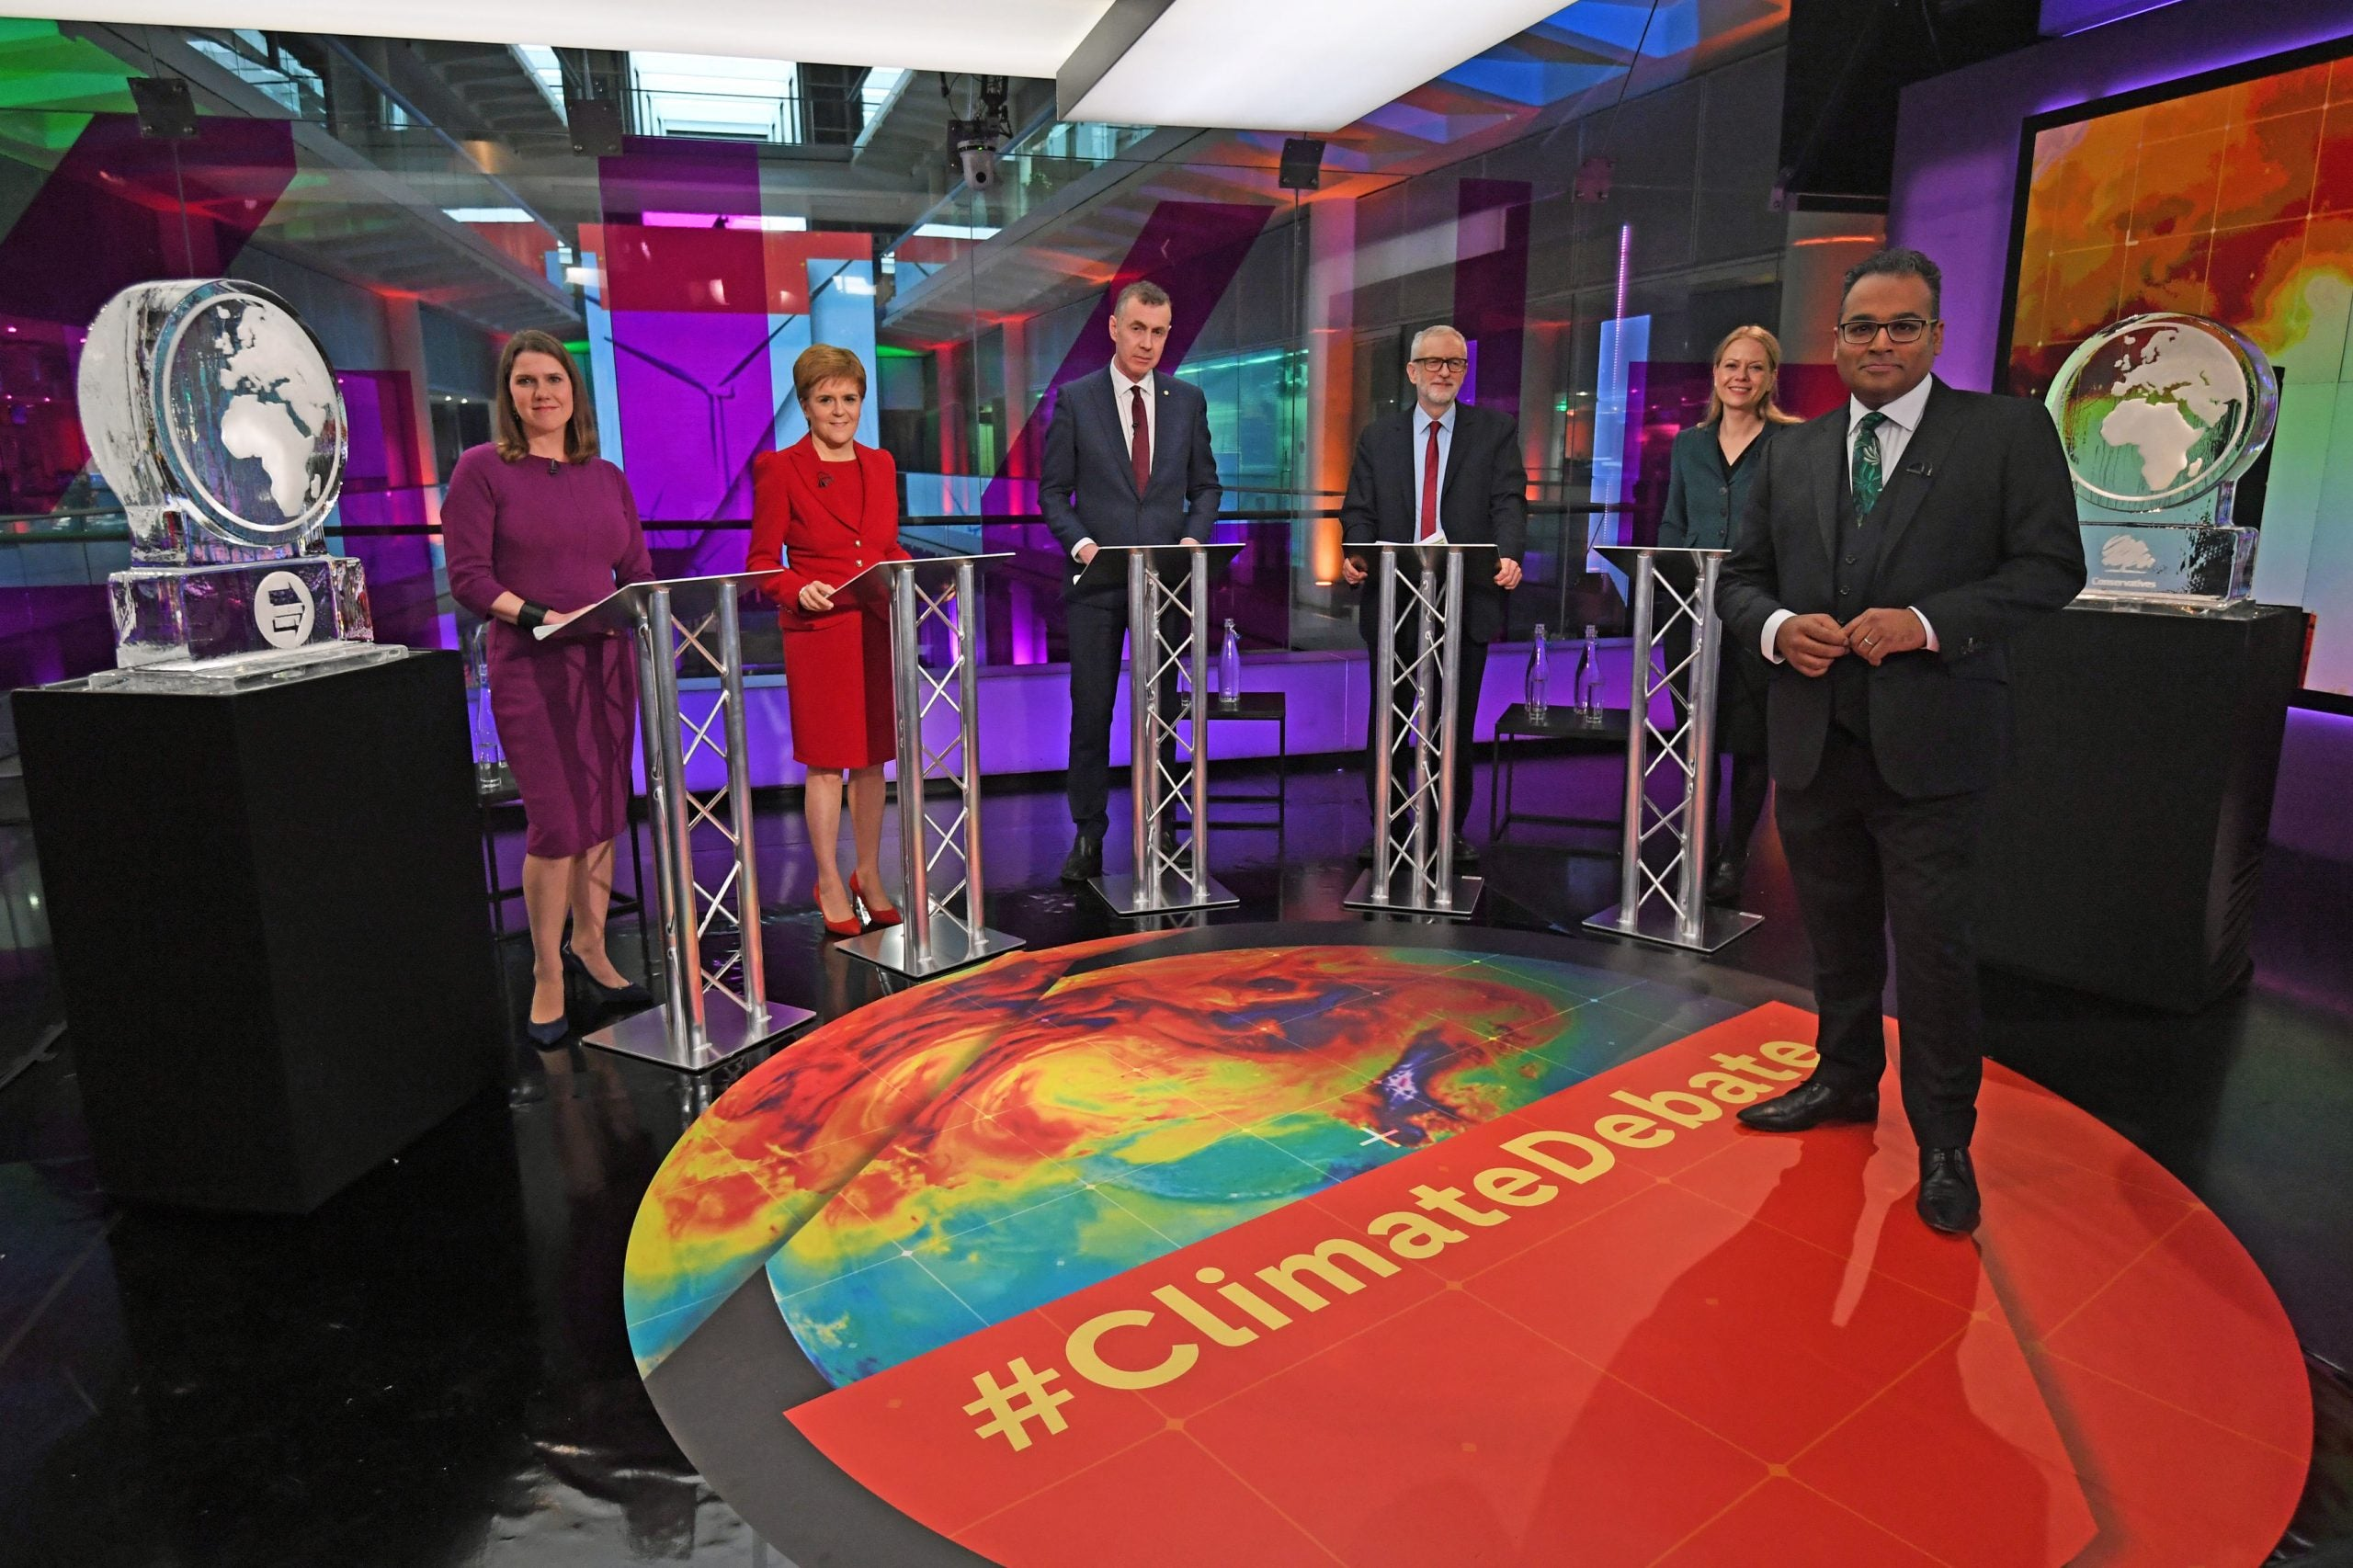 The BBC is to blame for the Tories skipping television debates and interviews